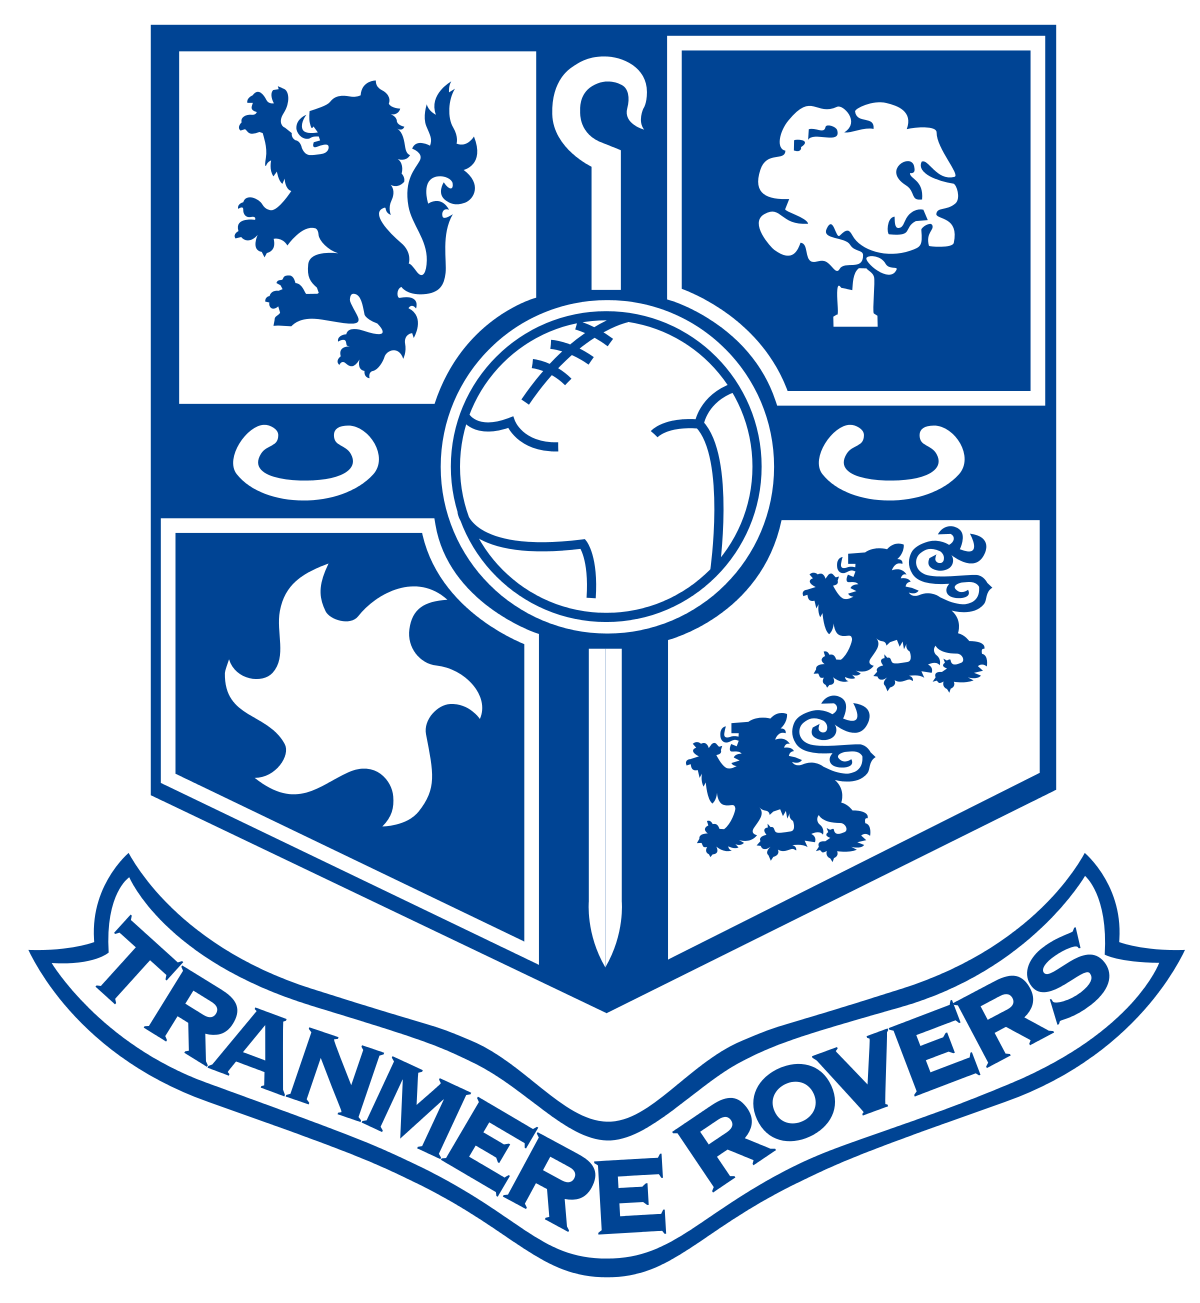 Tranmere Rovers crest